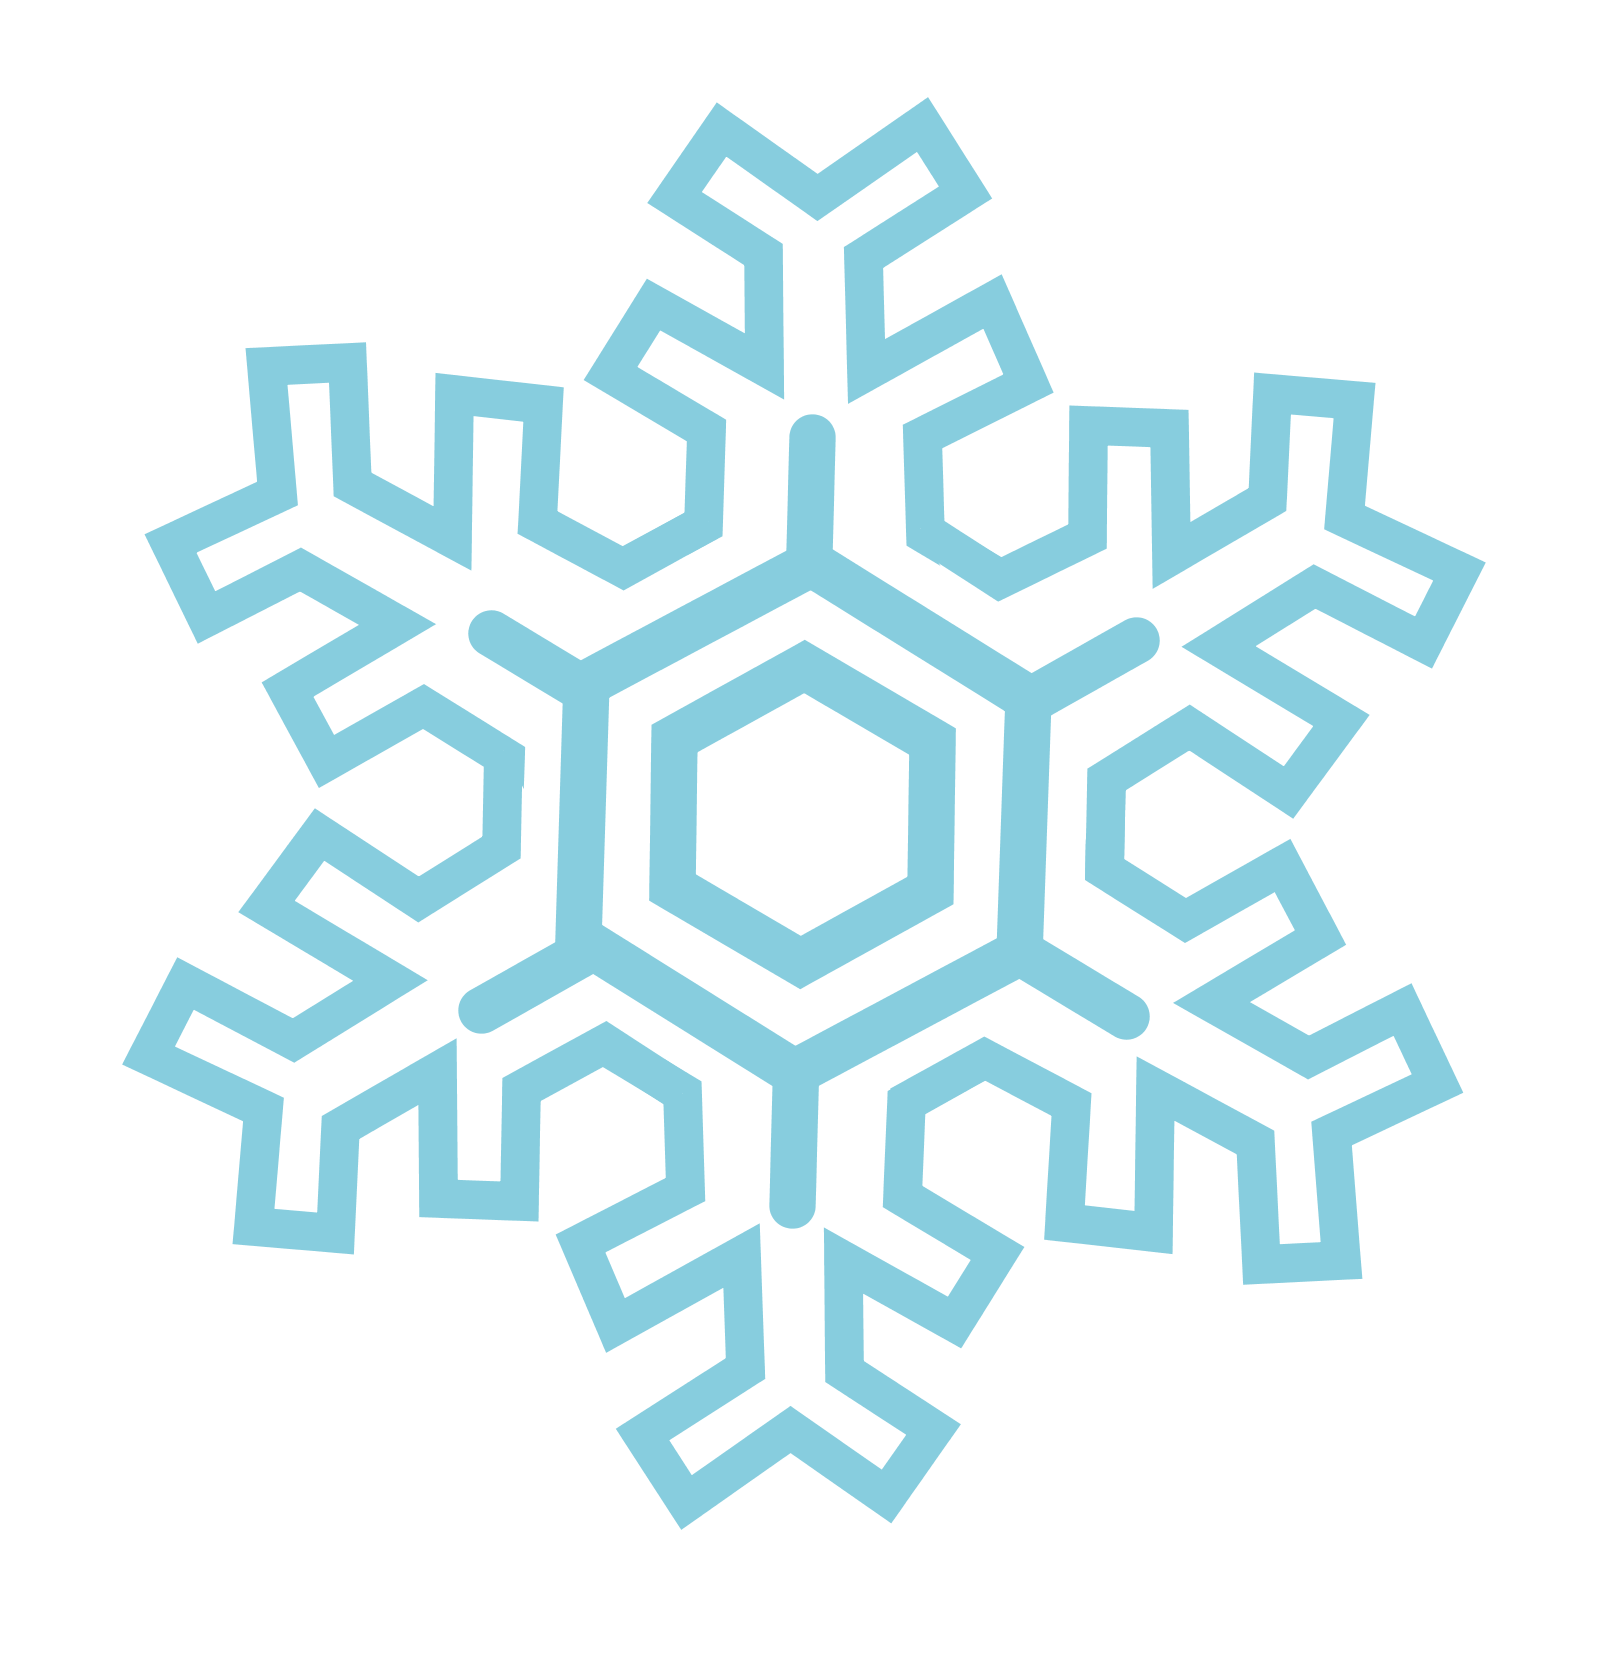 Snowflake vector png. Snowflakes images free download